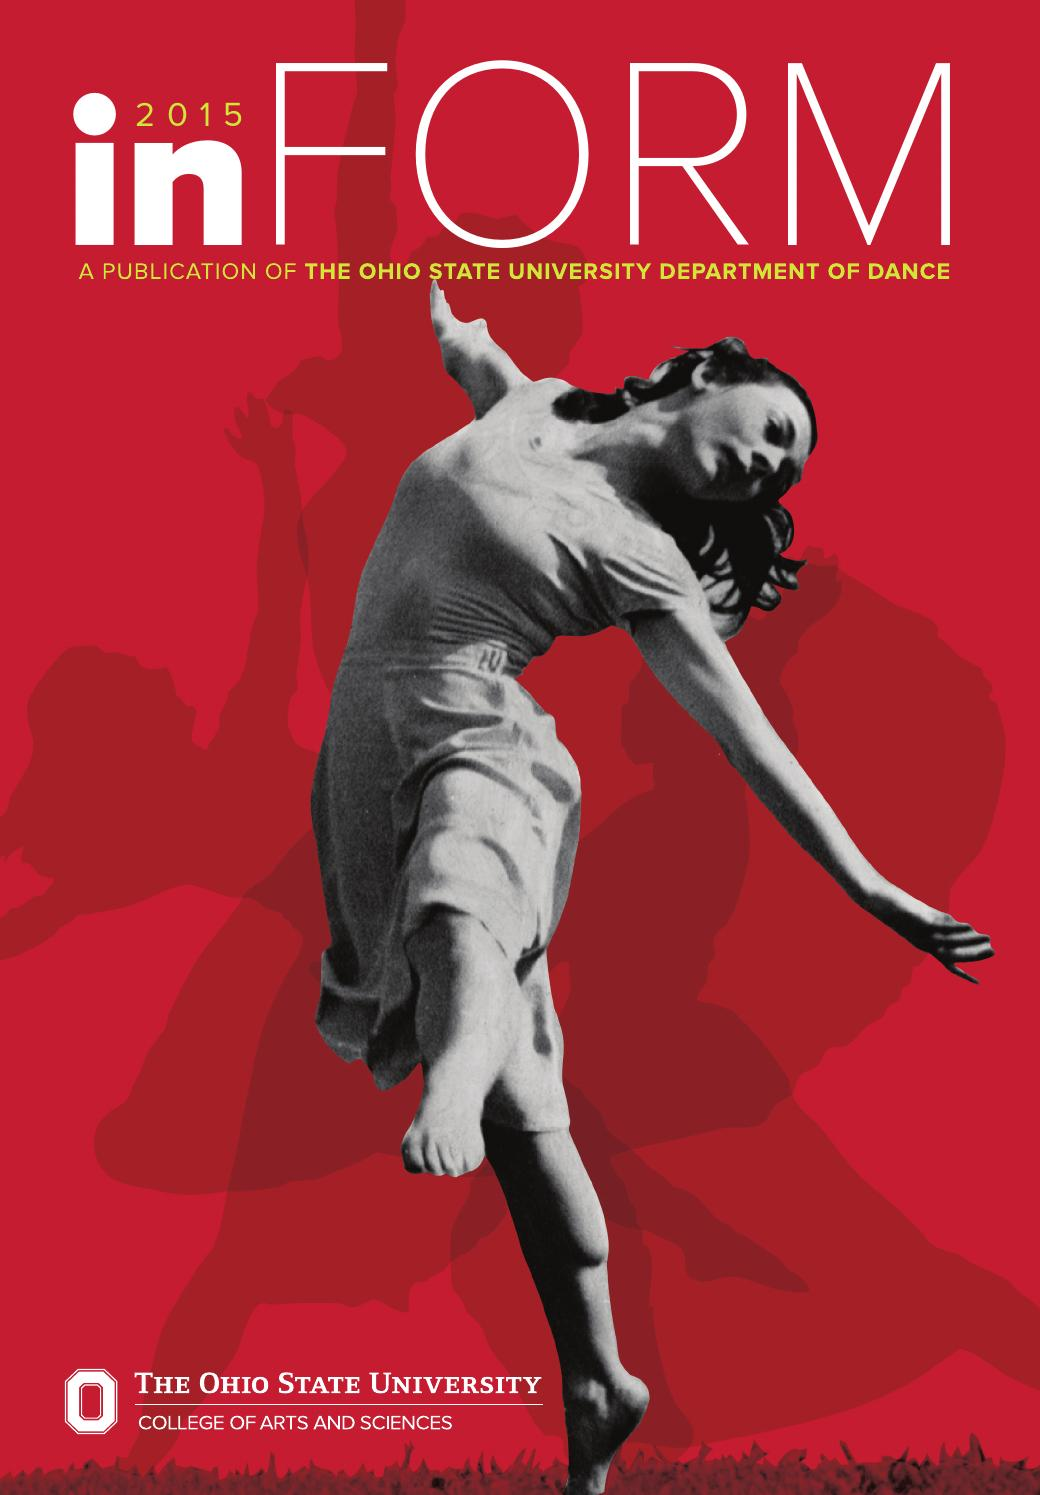 ohio state department of dance 2015 inform magazine by college of ohio state department of dance 2015 inform magazine by college of arts and sciences at ohio state